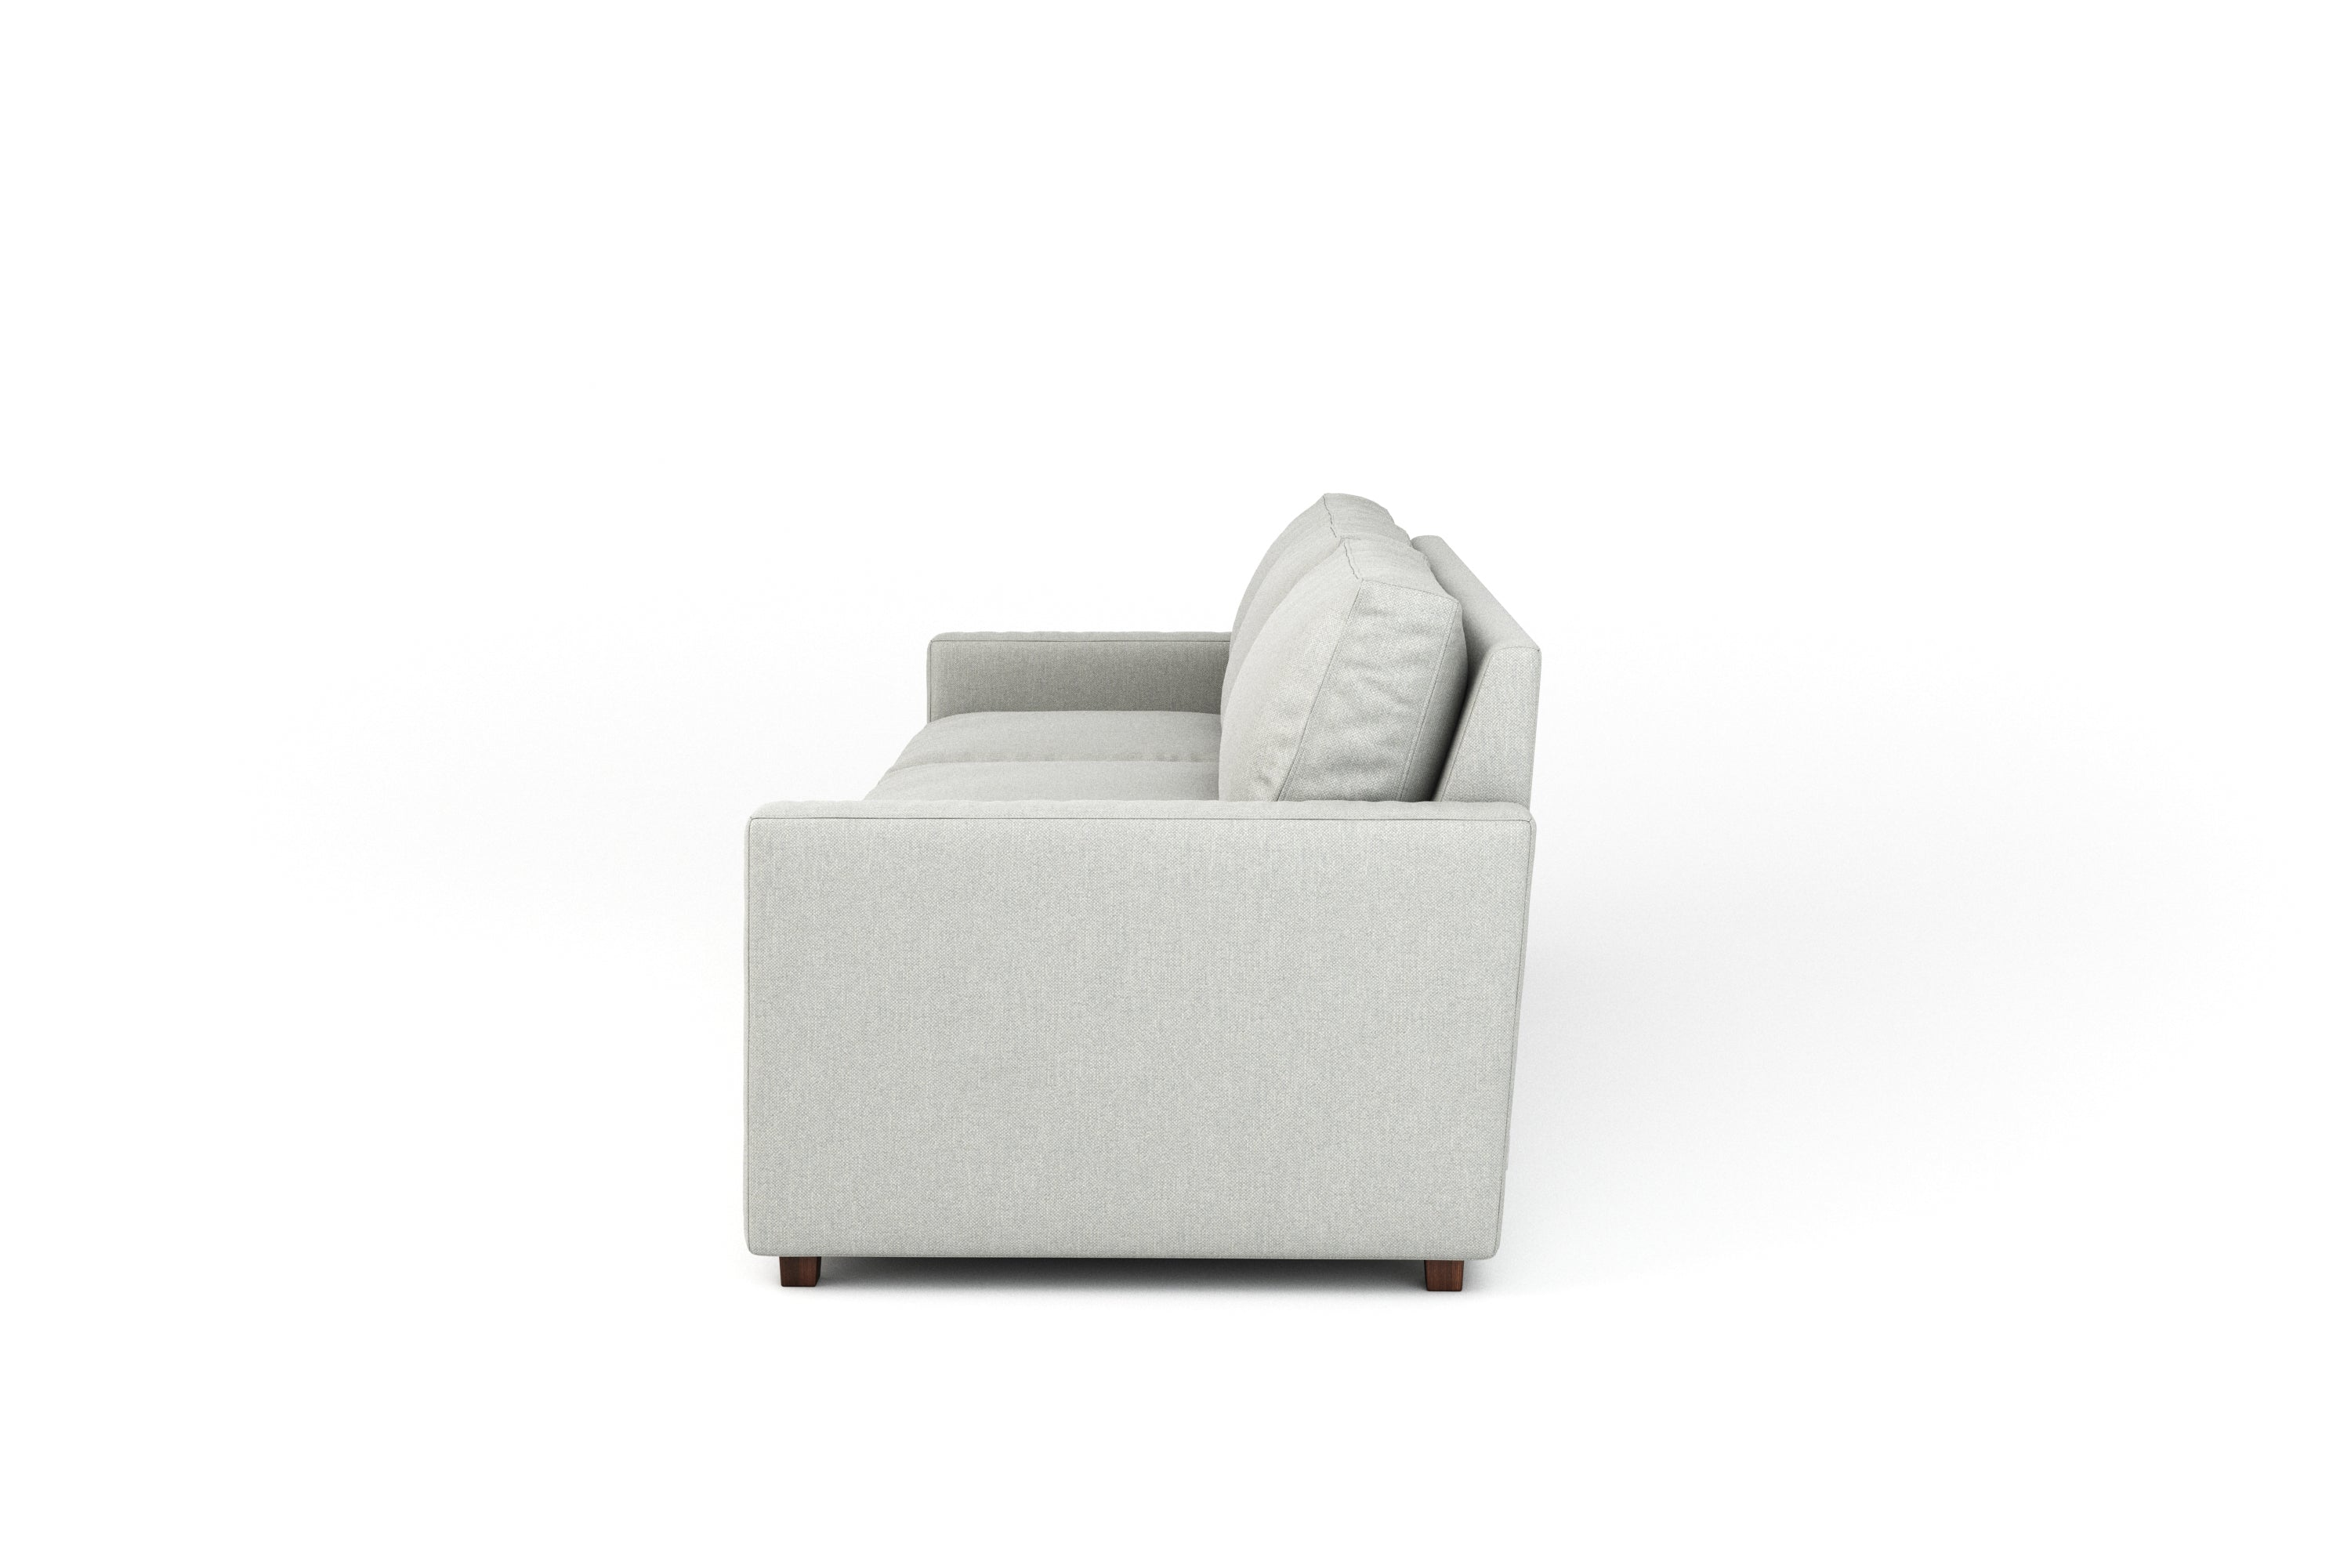 Couch Potato Lite Sofa